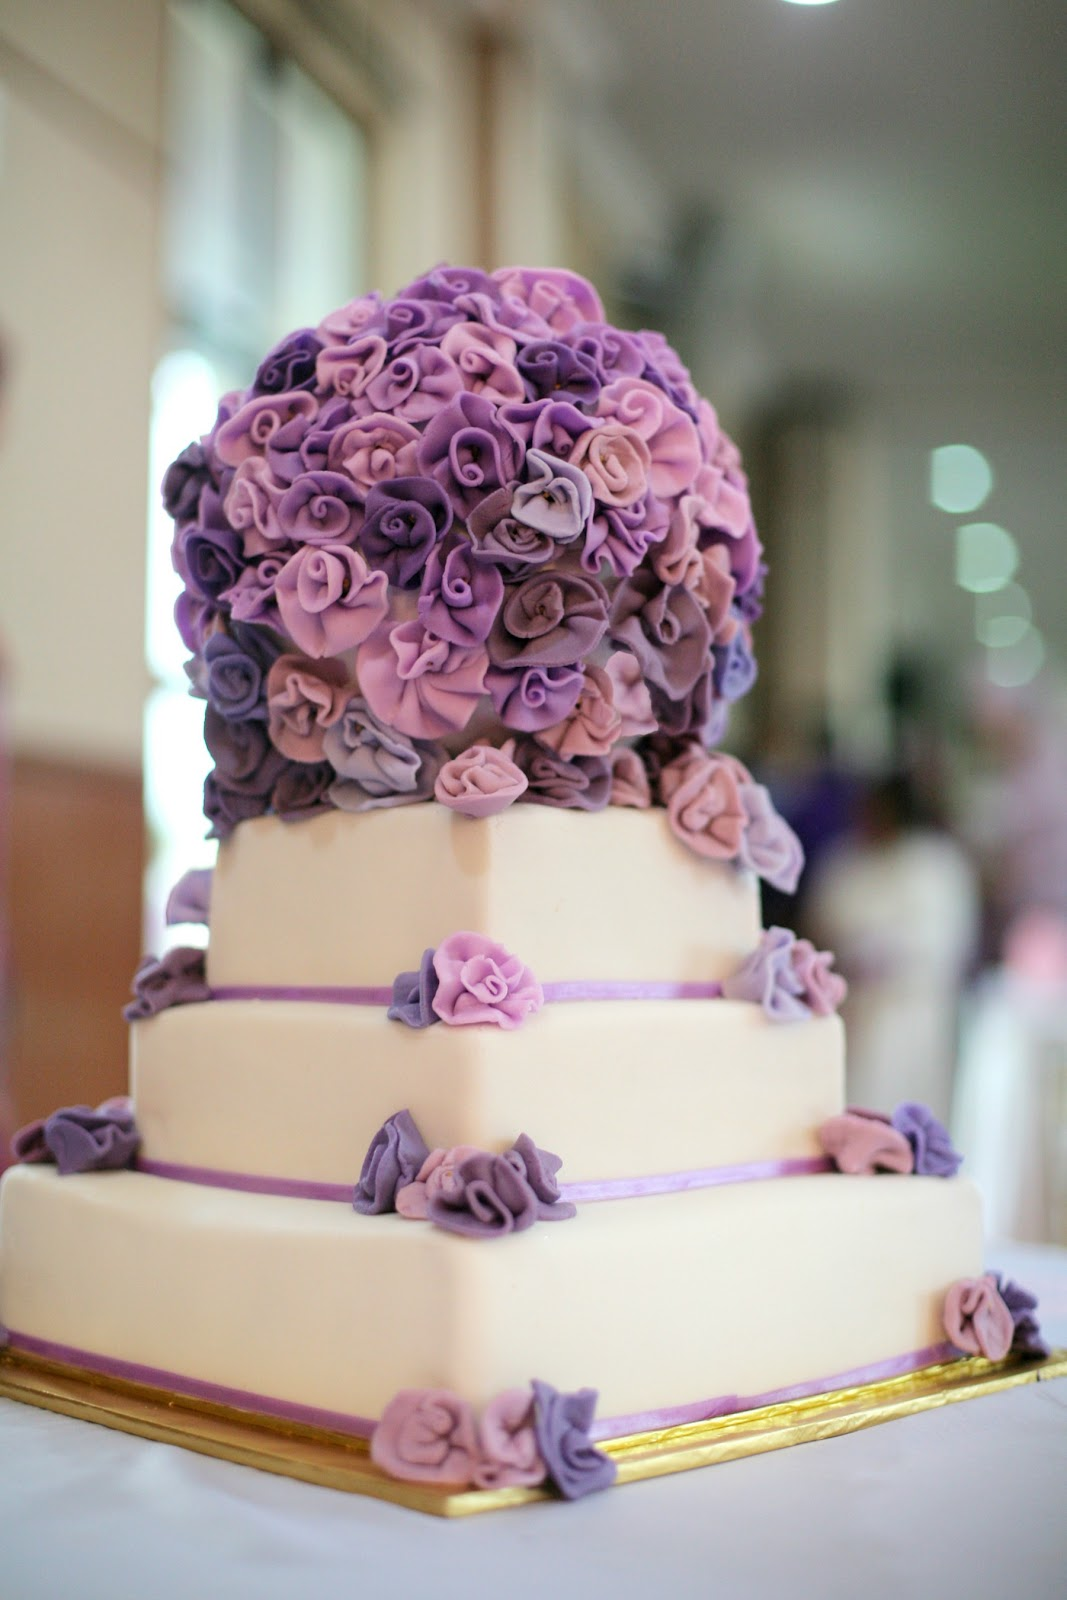 Cake Images For Marriage : Wedding Cake - Cakes Photo (35316421) - Fanpop